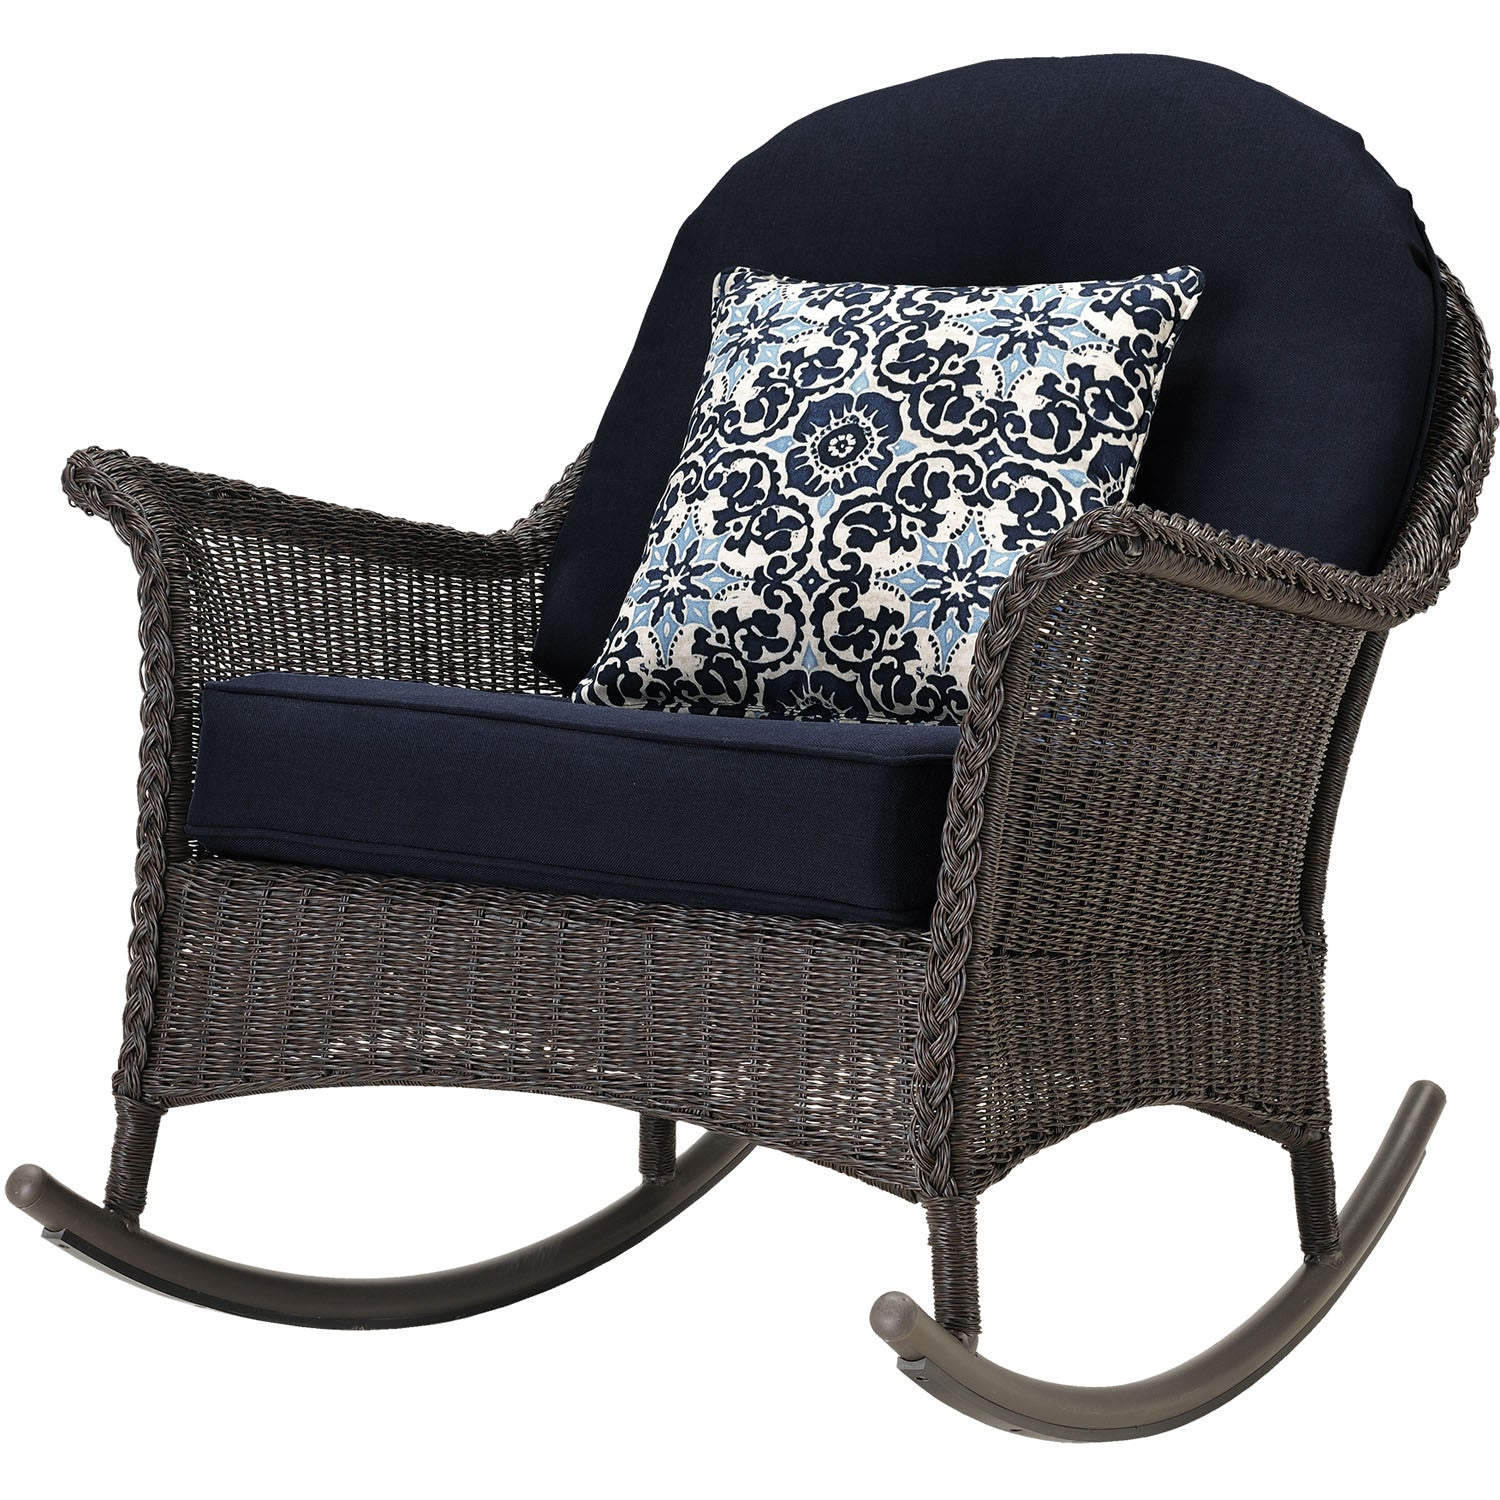 San Marino 3pc Set: 3 Woven Rocking Chairs, One Side Table   SMAR 3PC NVY    Brown/Navy